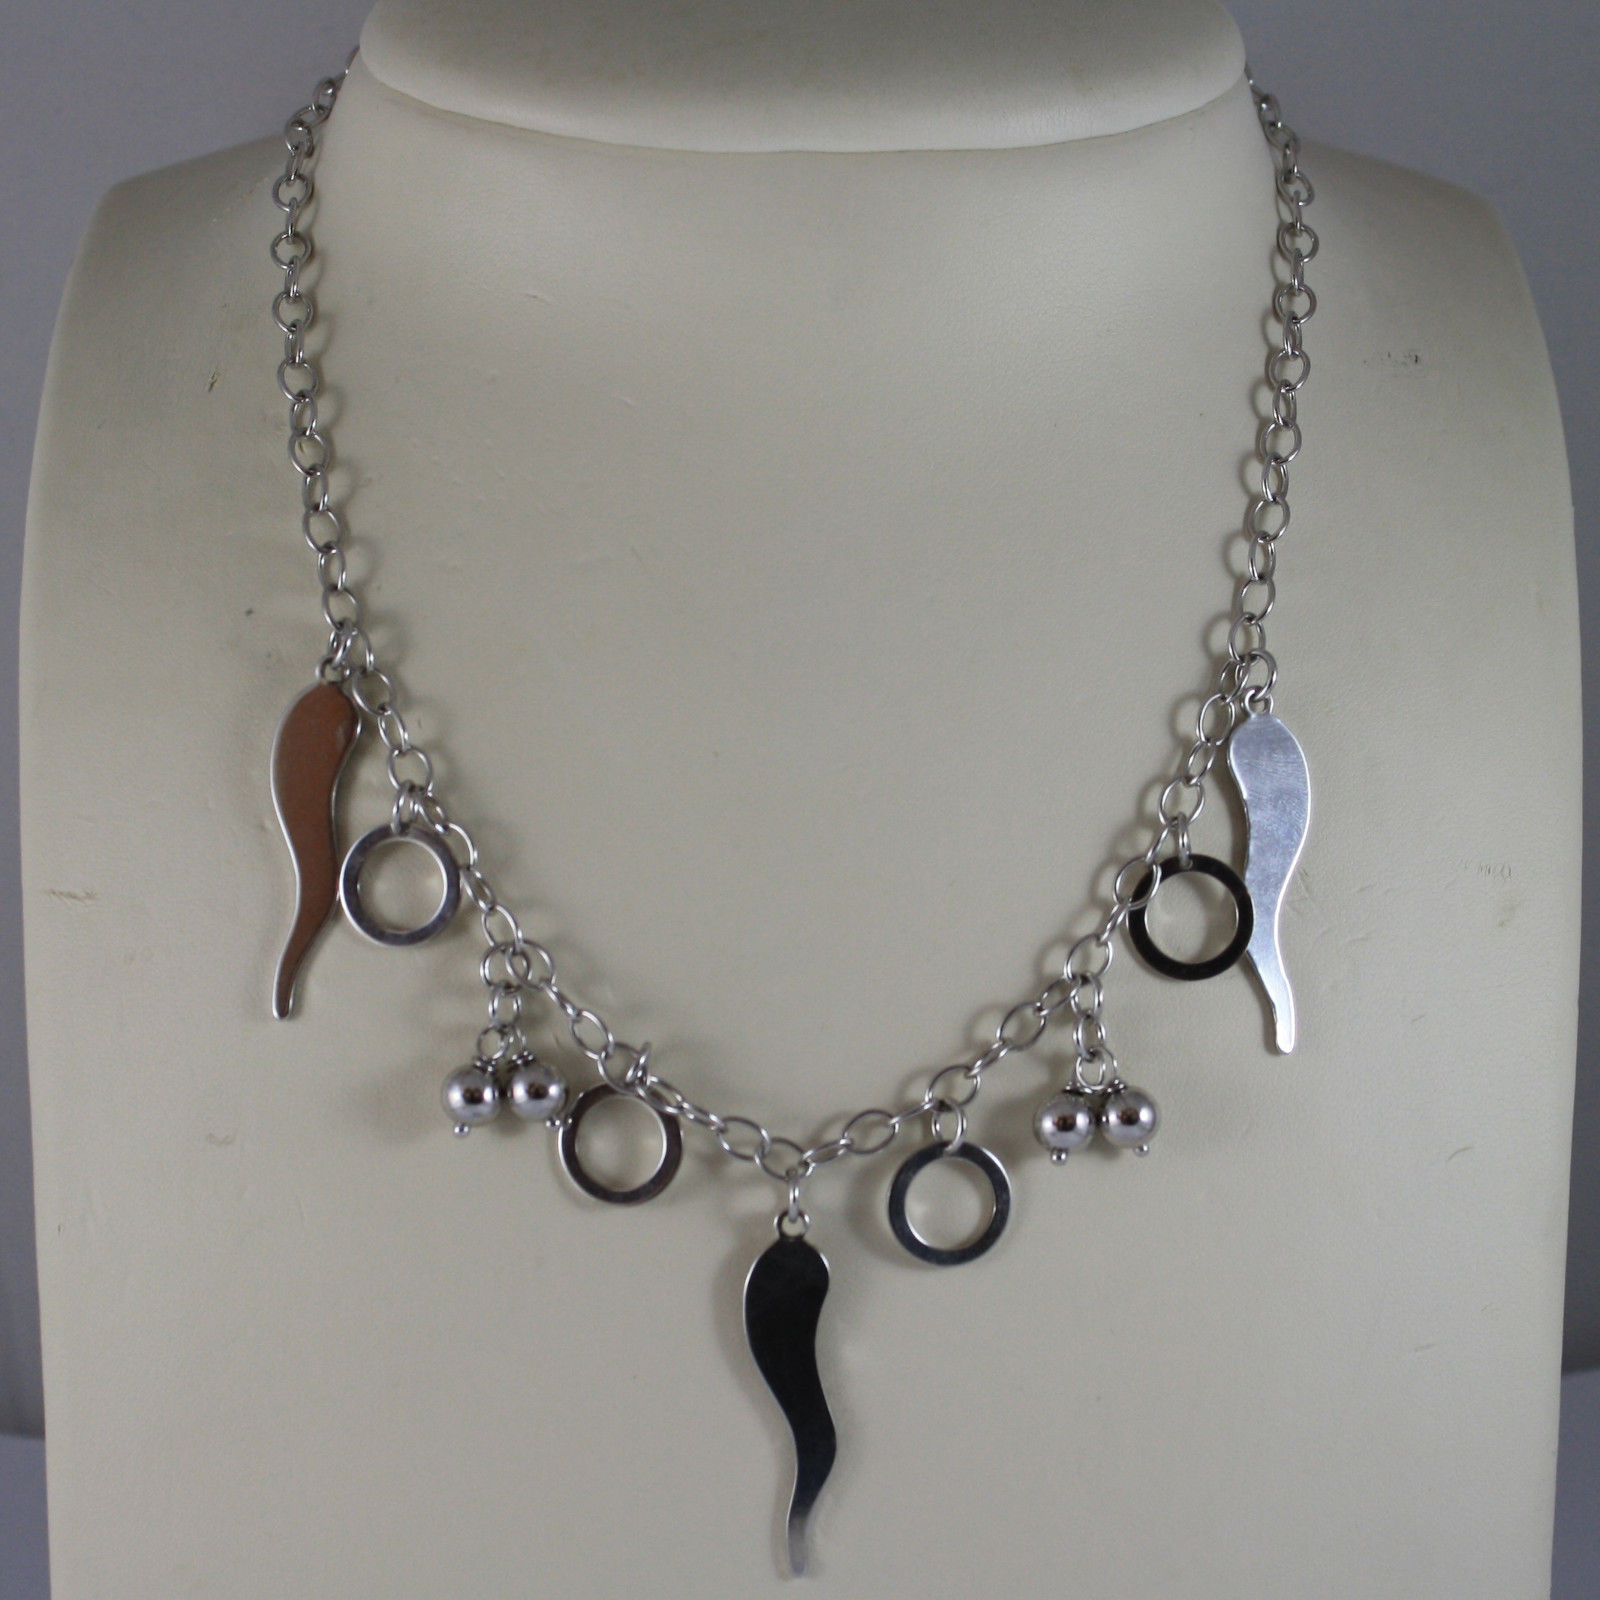 .925 RHODIUM SILVER NECKLACE WITH CHARMS, HORNS, WHEELS AND BALLS